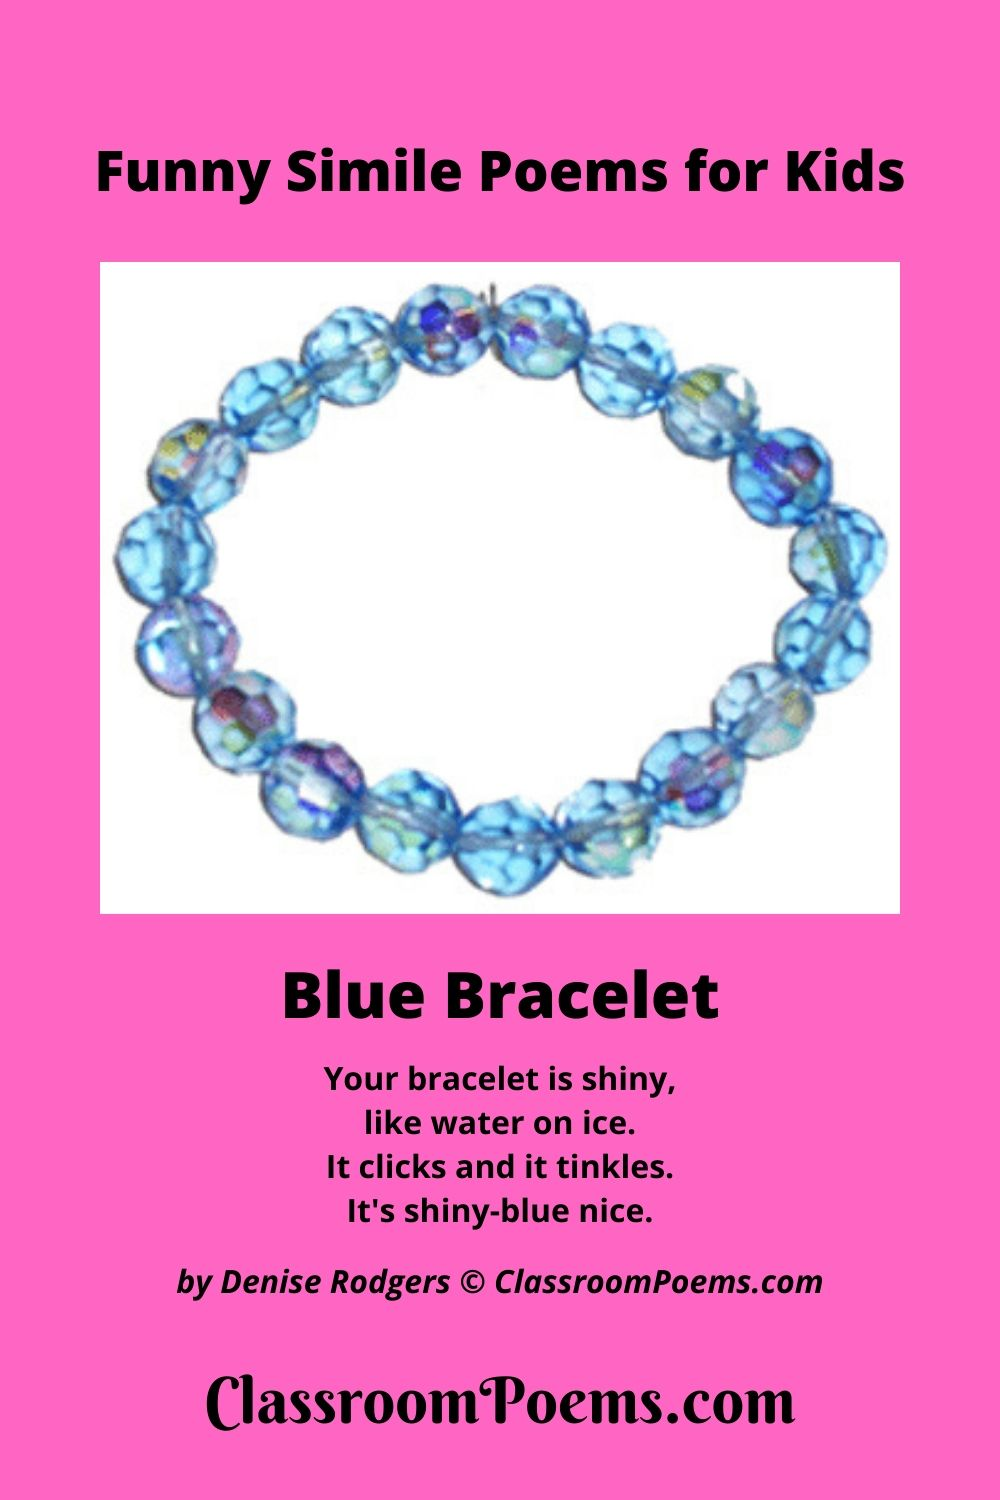 Blue bracelet simile poem.